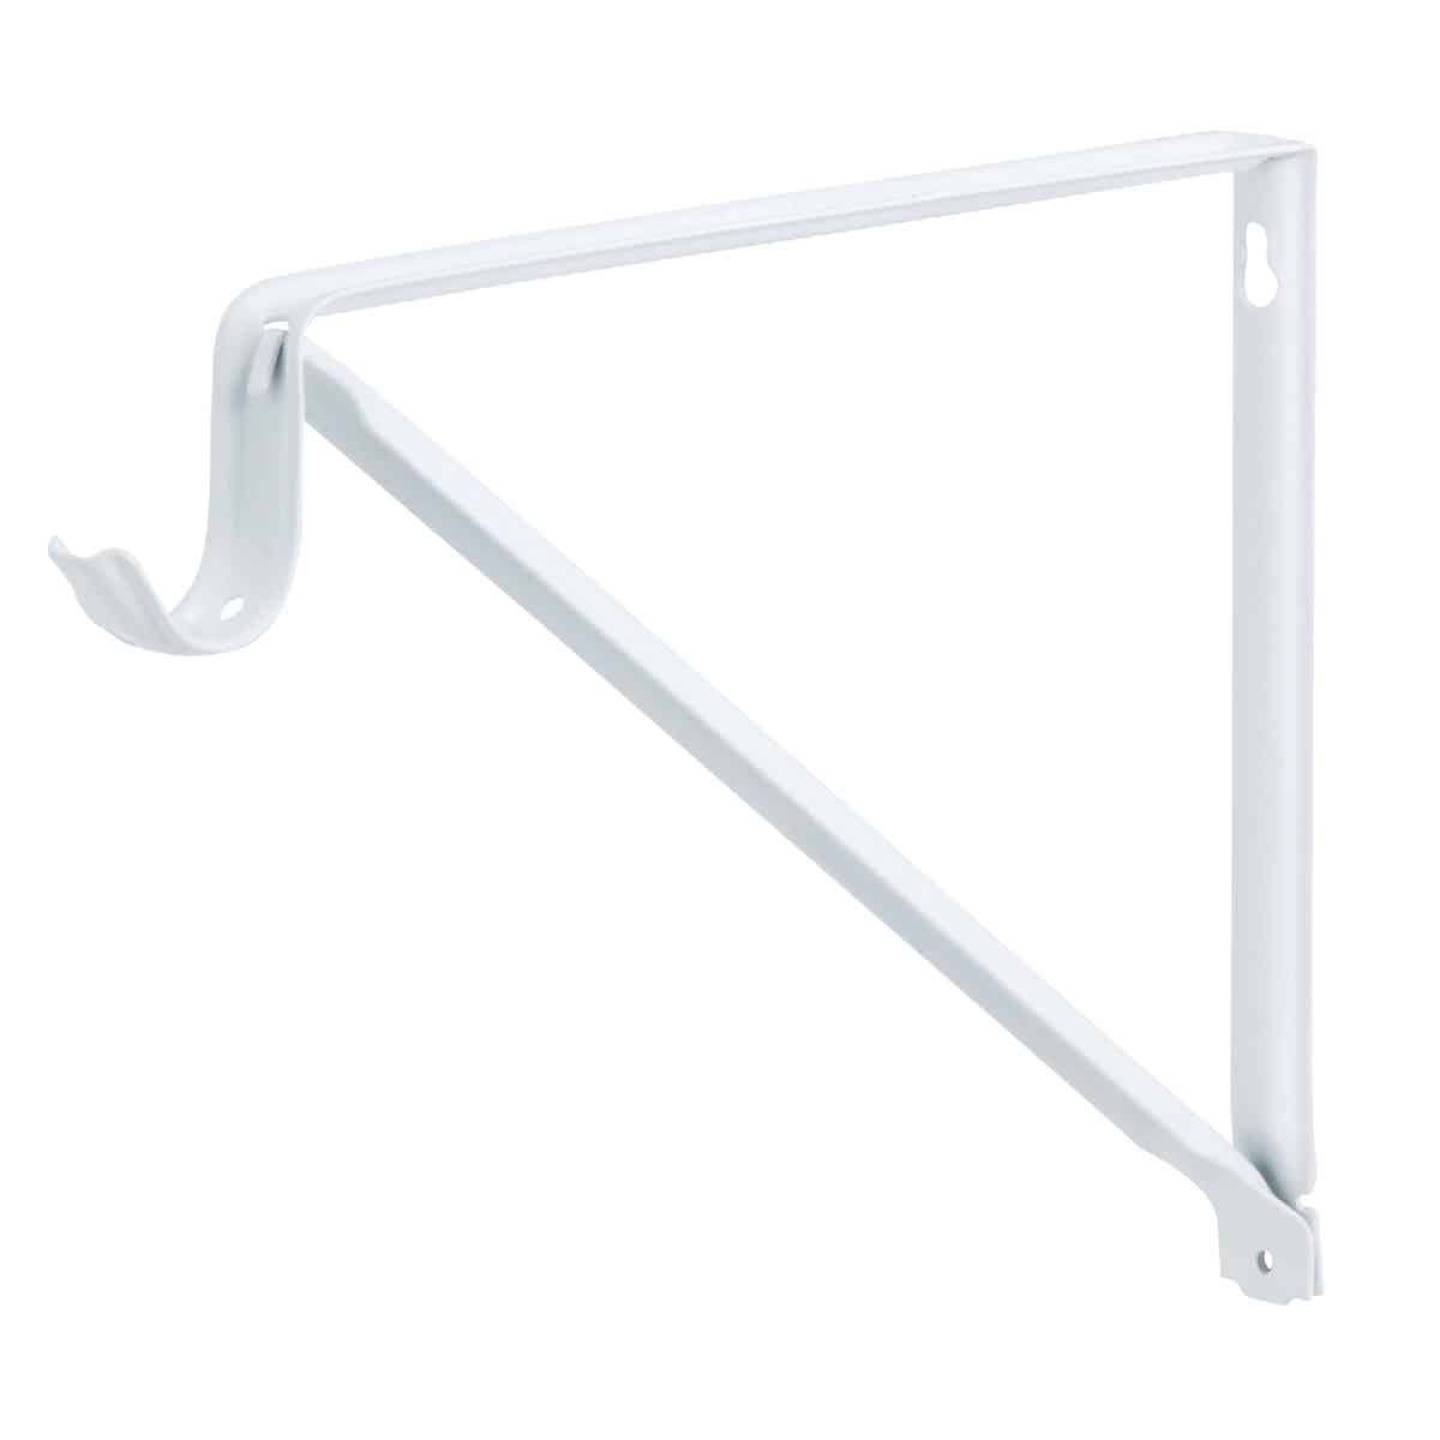 John Sterling Closet-Pro 10 In. H. x 11 In. D. Fixed Closet Shelf & Rod Bracket, White Image 1